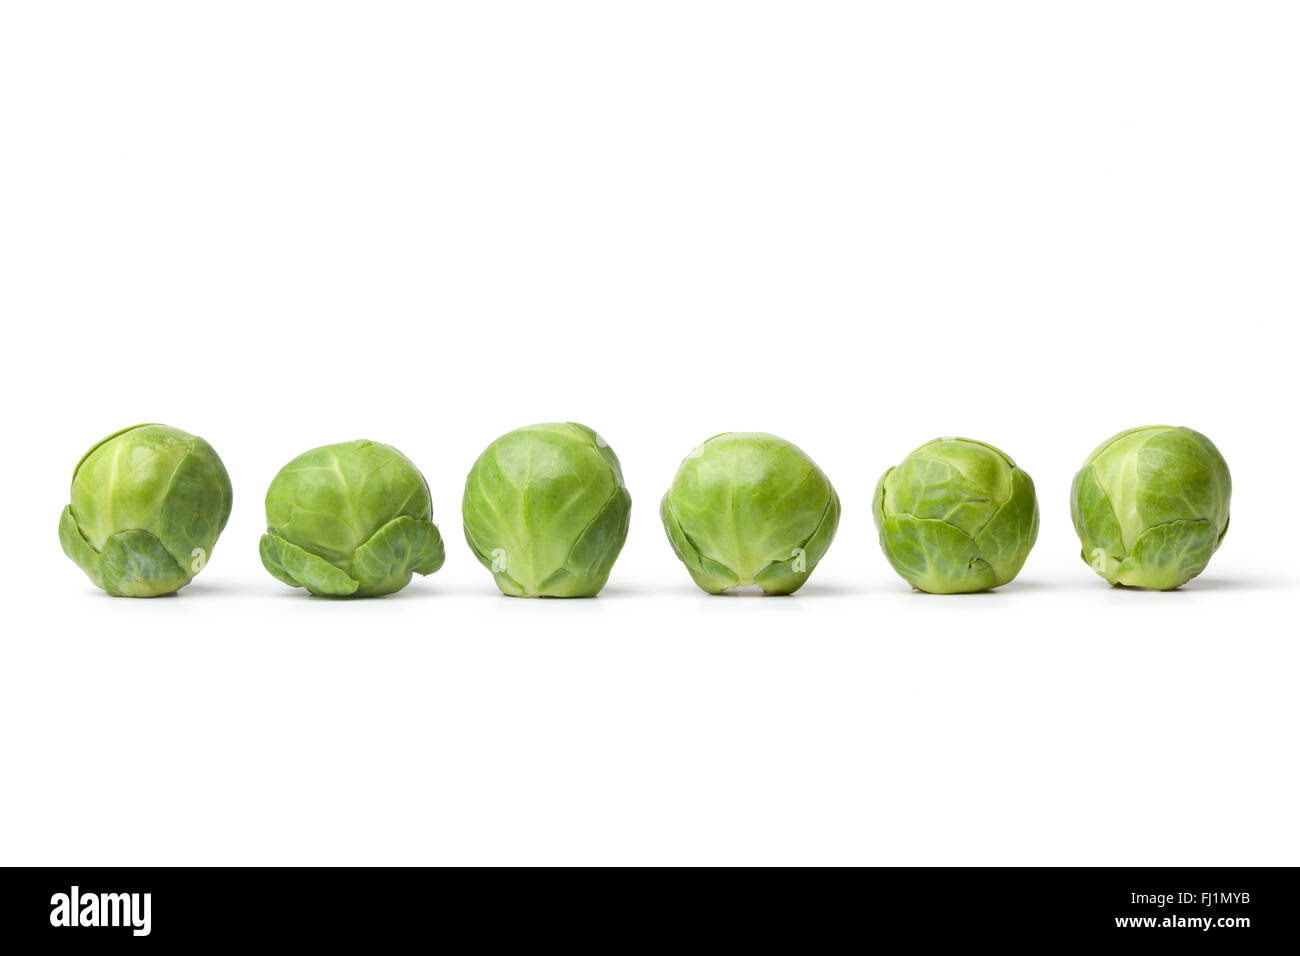 Row of fresh raw Brussel sprouts on white background - Stock Image